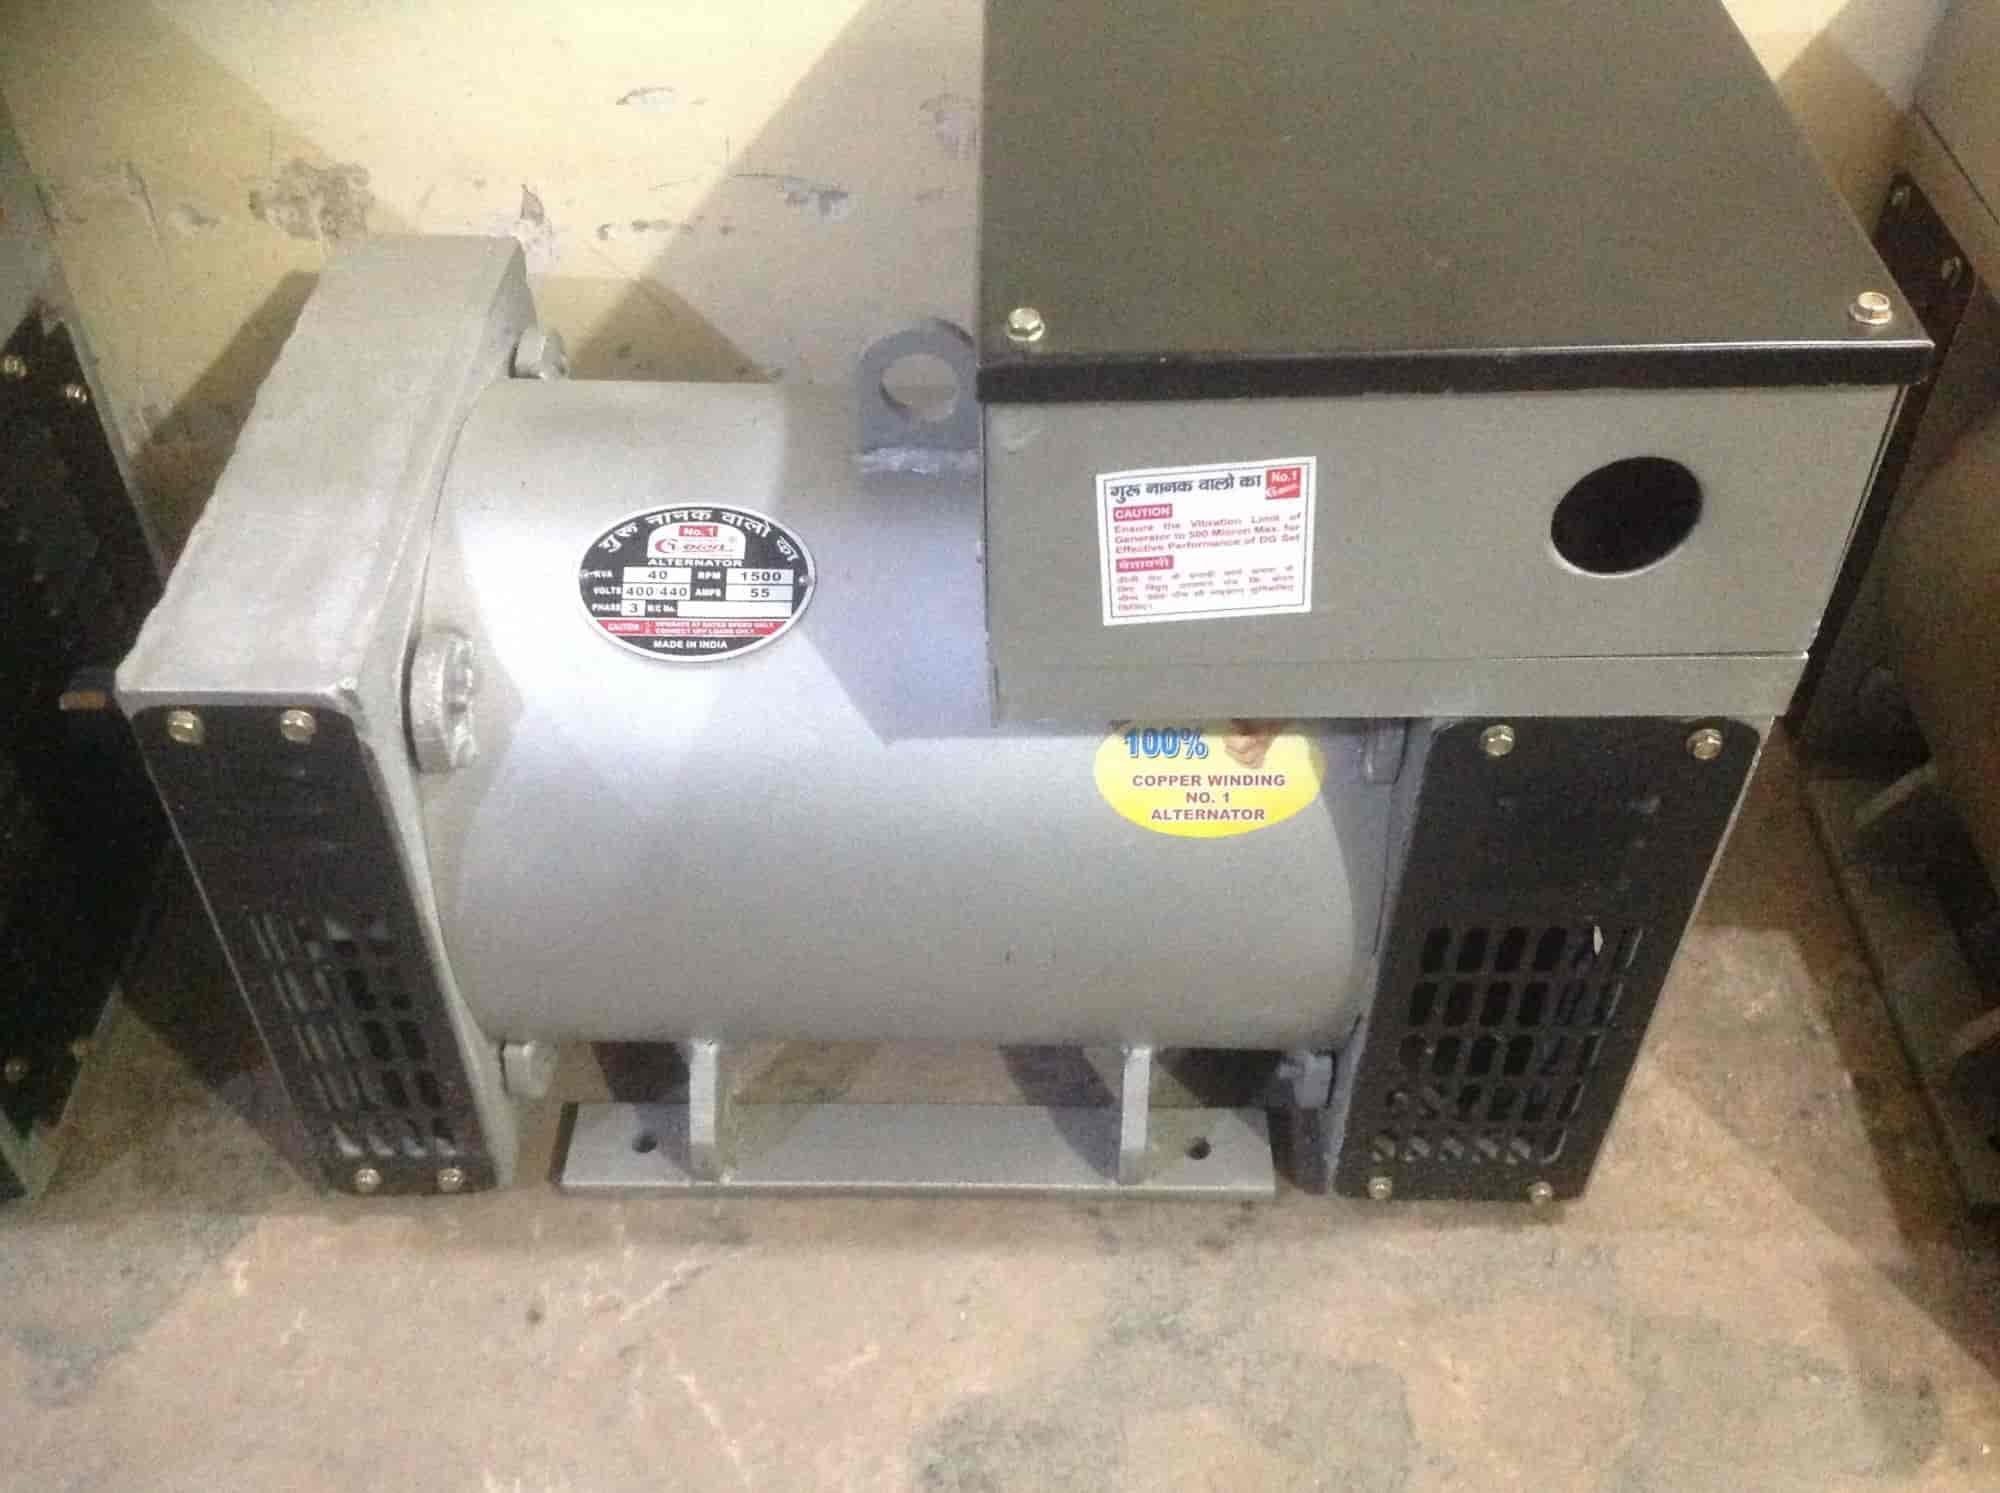 Guru Nanak Generators, Gb Road - Generator Dealers in Delhi - Justdial